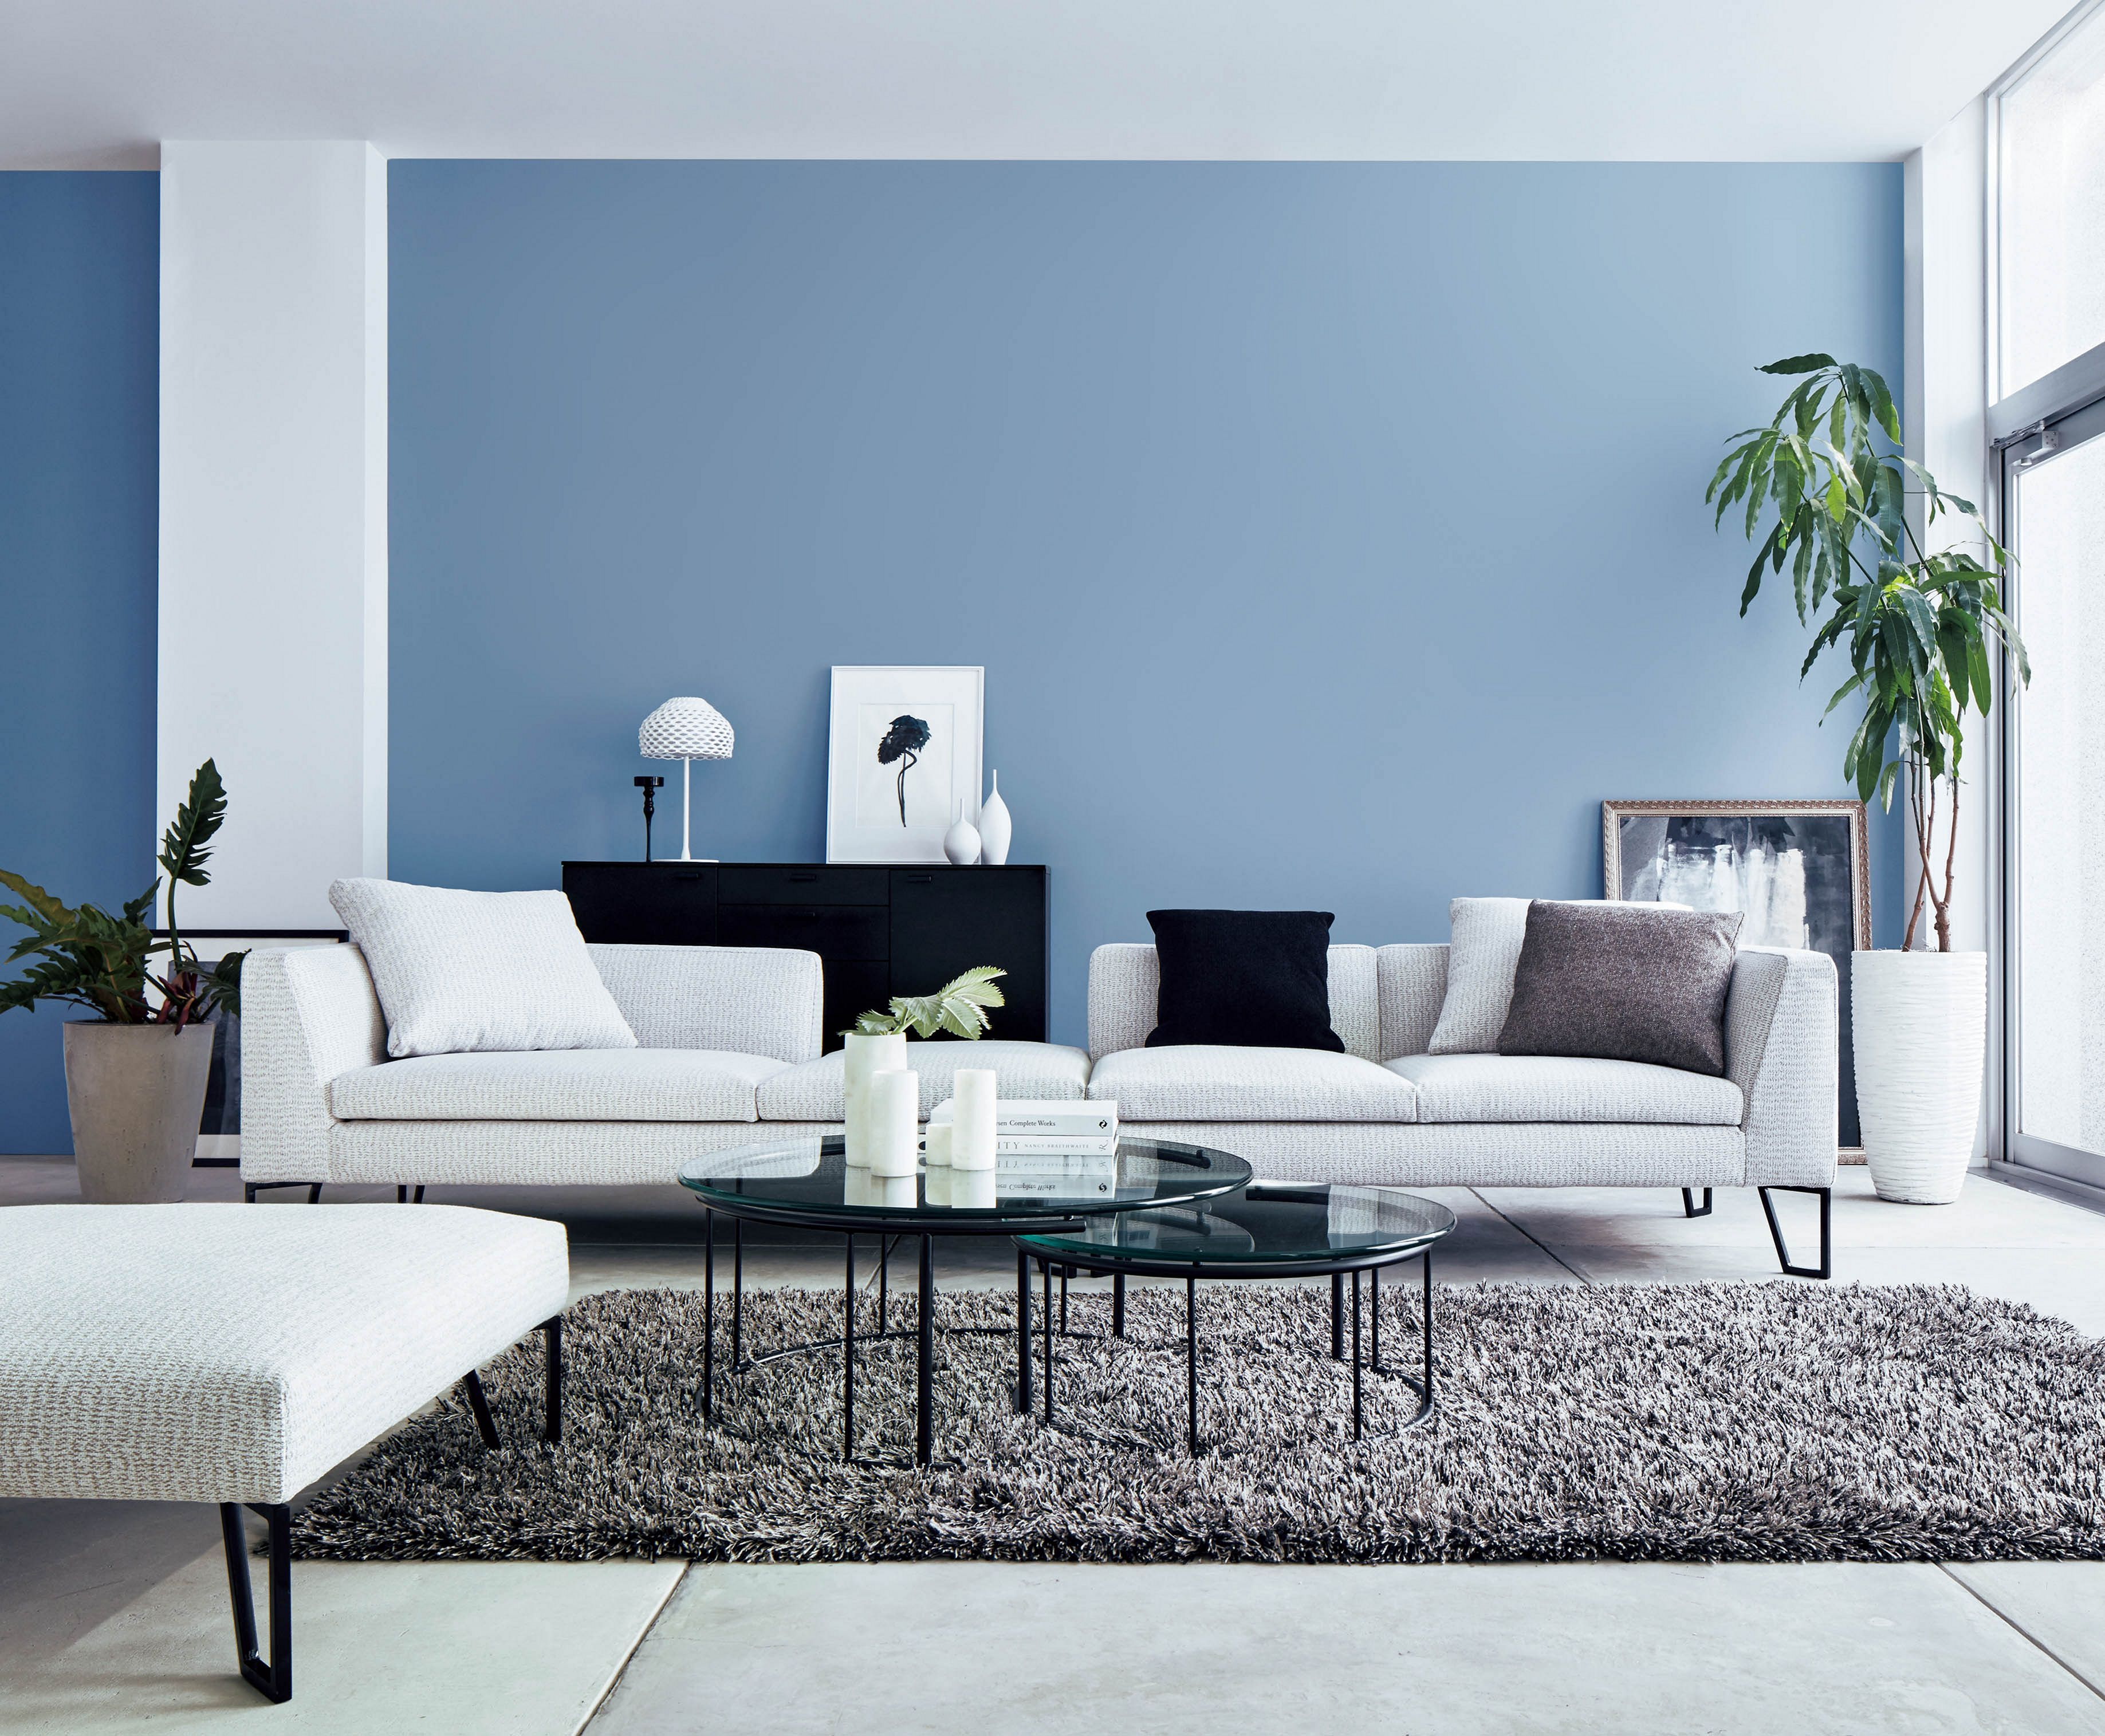 10 Most Gorgeous Living Room Color Combination Ideas You Need To Apply Dexorate Living Room Color Combination Blue Living Room Blue Living Room Decor